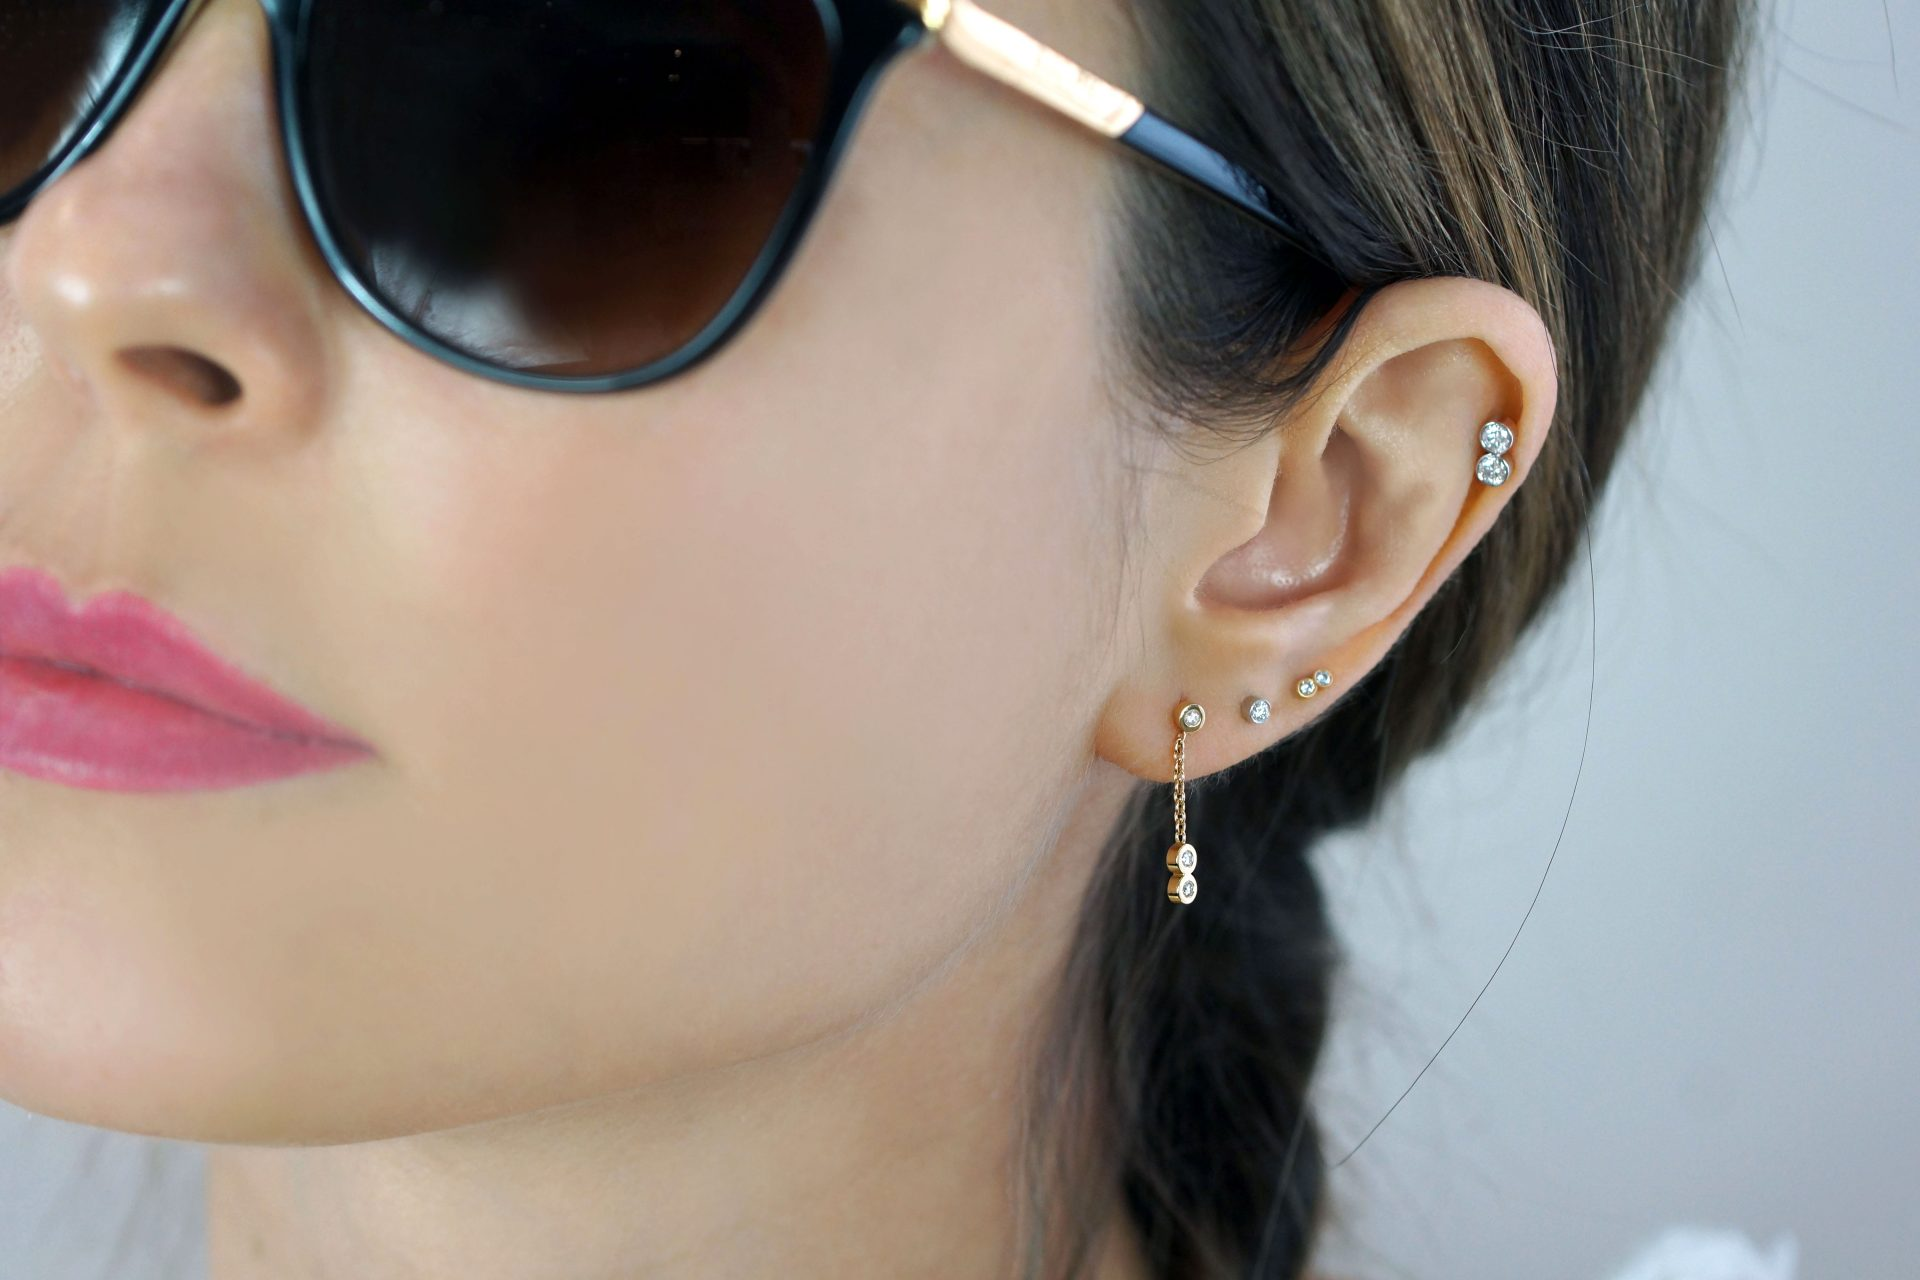 high-quality–cartilage-earrings-piercing-jewellery-lena-cohen-london